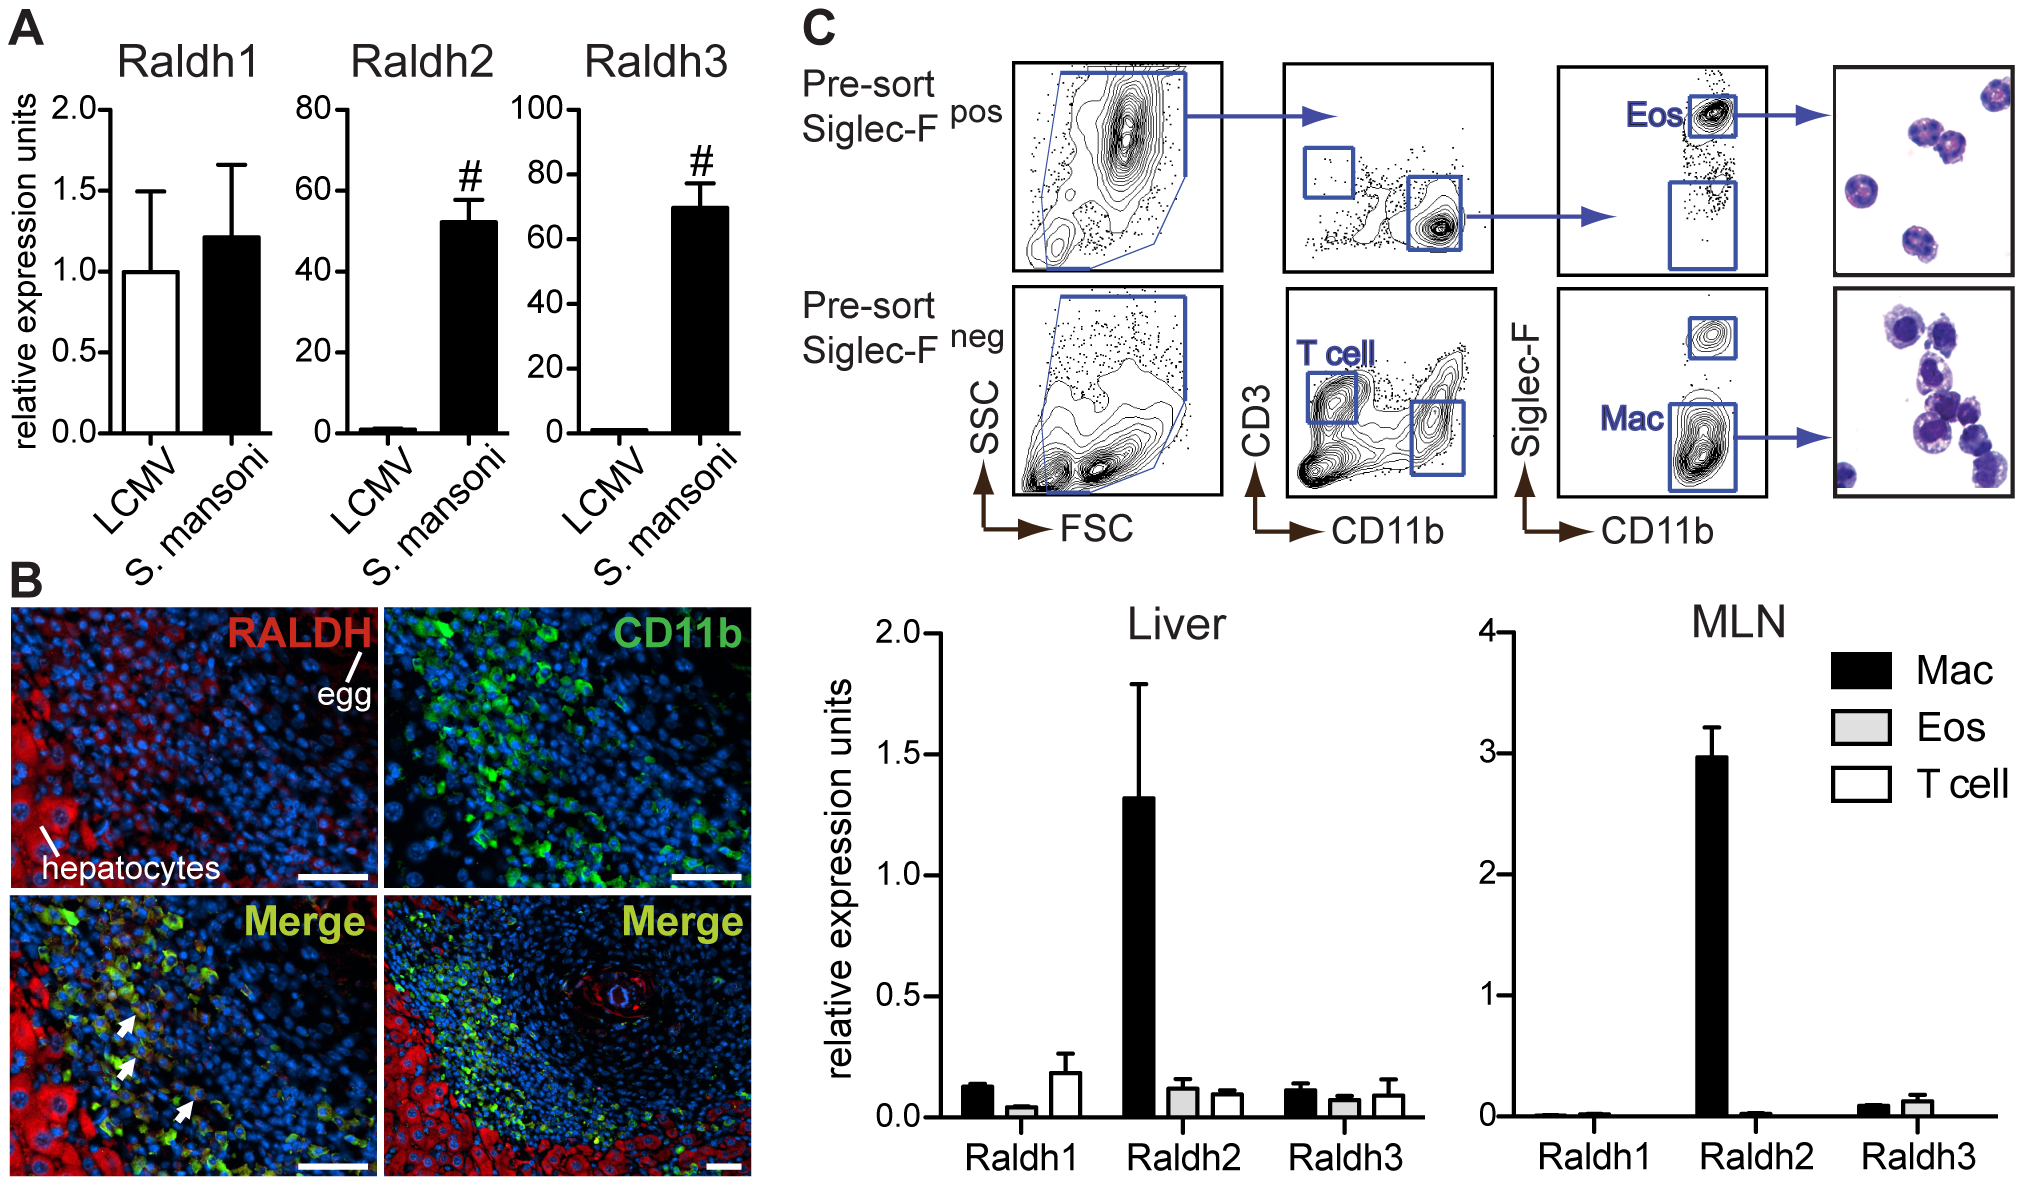 Type-2 inflammatory cells express Raldh2 and Raldh3, with Raldh2 most highly expressed in macrophages.